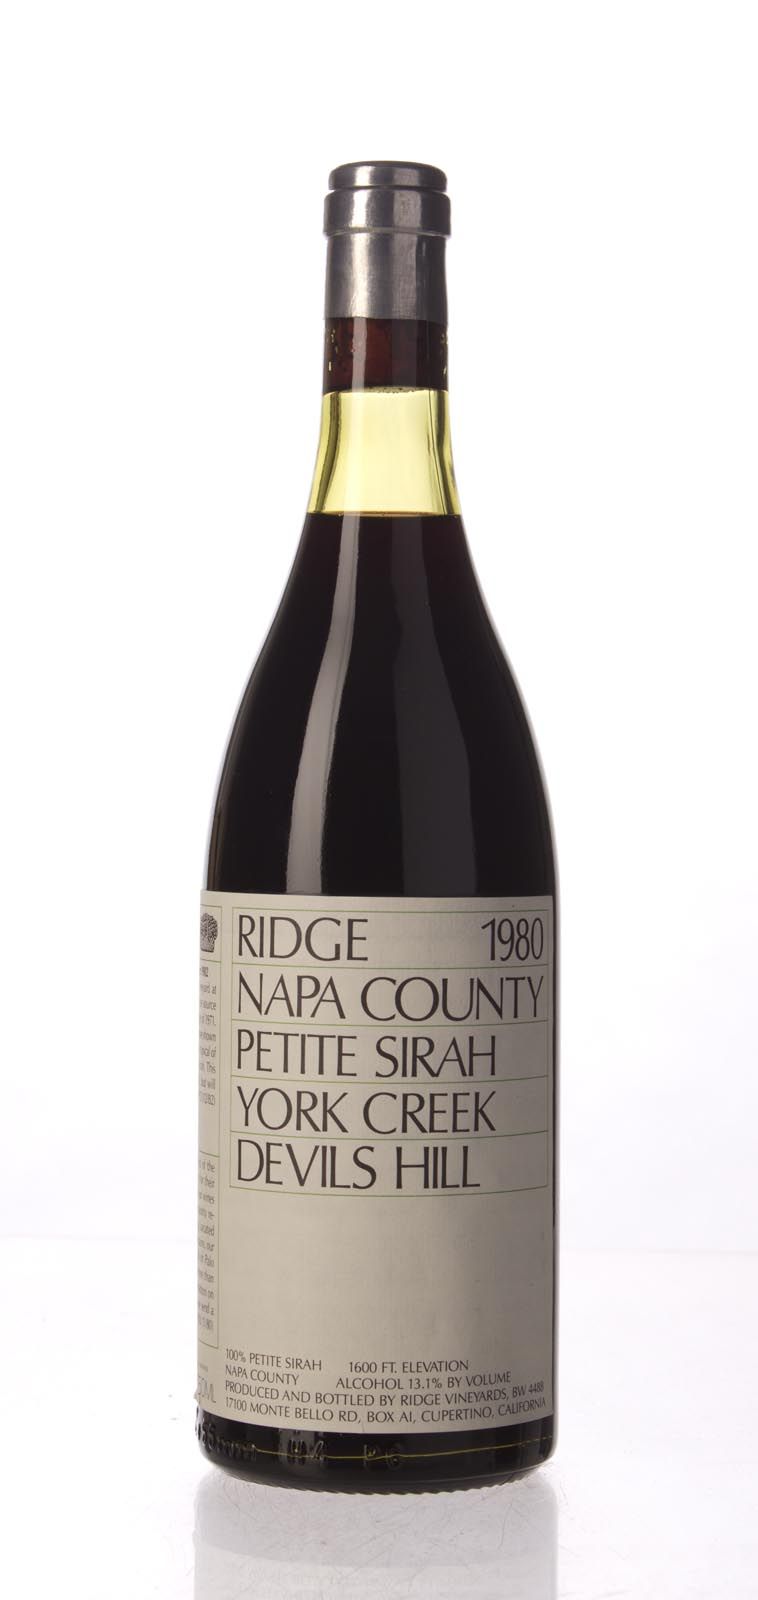 Ridge Petite Sirah Devil`s Hill 1980, 750mL () from The BPW - Merchants of rare and fine wines.